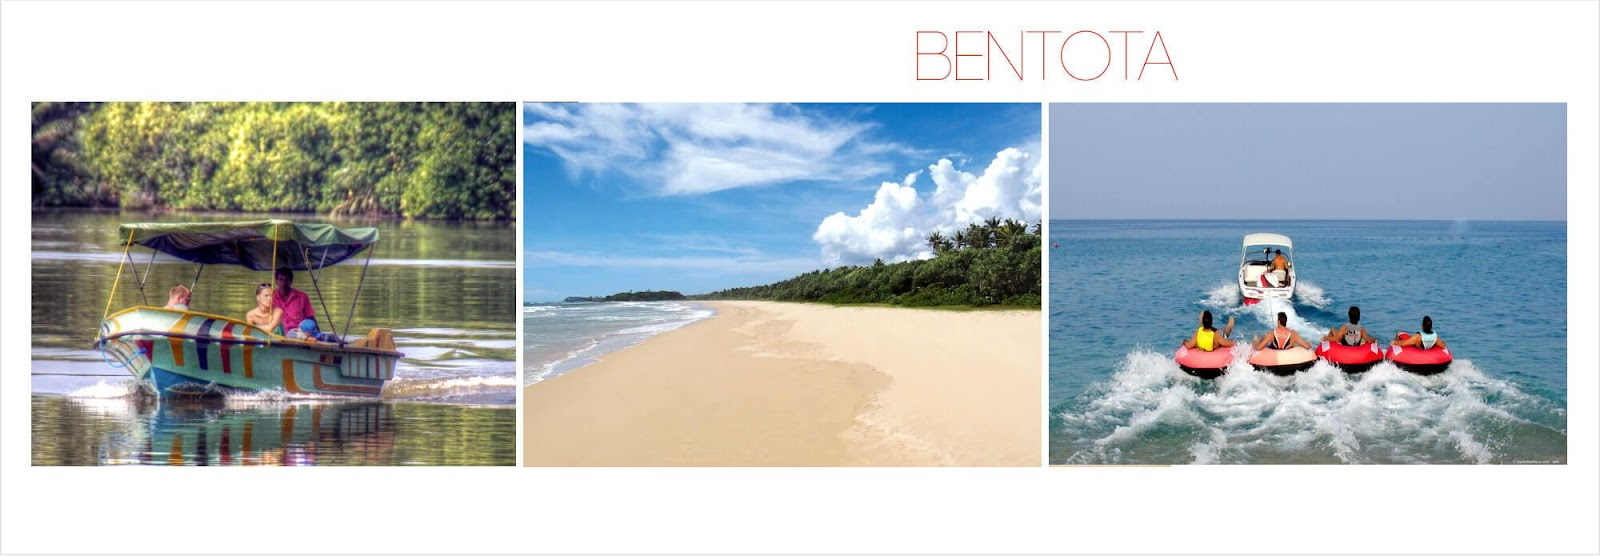 C:\Users\Ajith\Google Drive\Destinations Images\Bentota.jpg